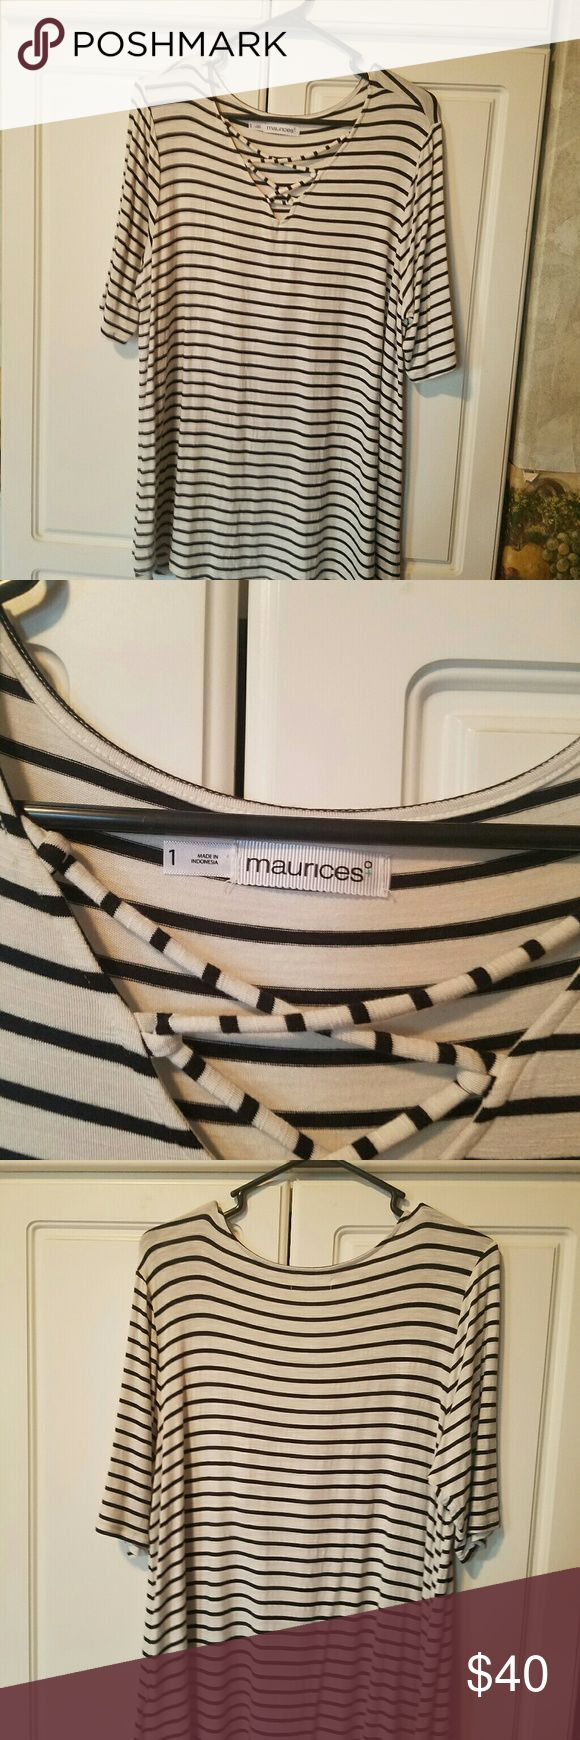 Maurices plus size 1 Brand new never worn  black and white Tops Tees - Short Sleeve